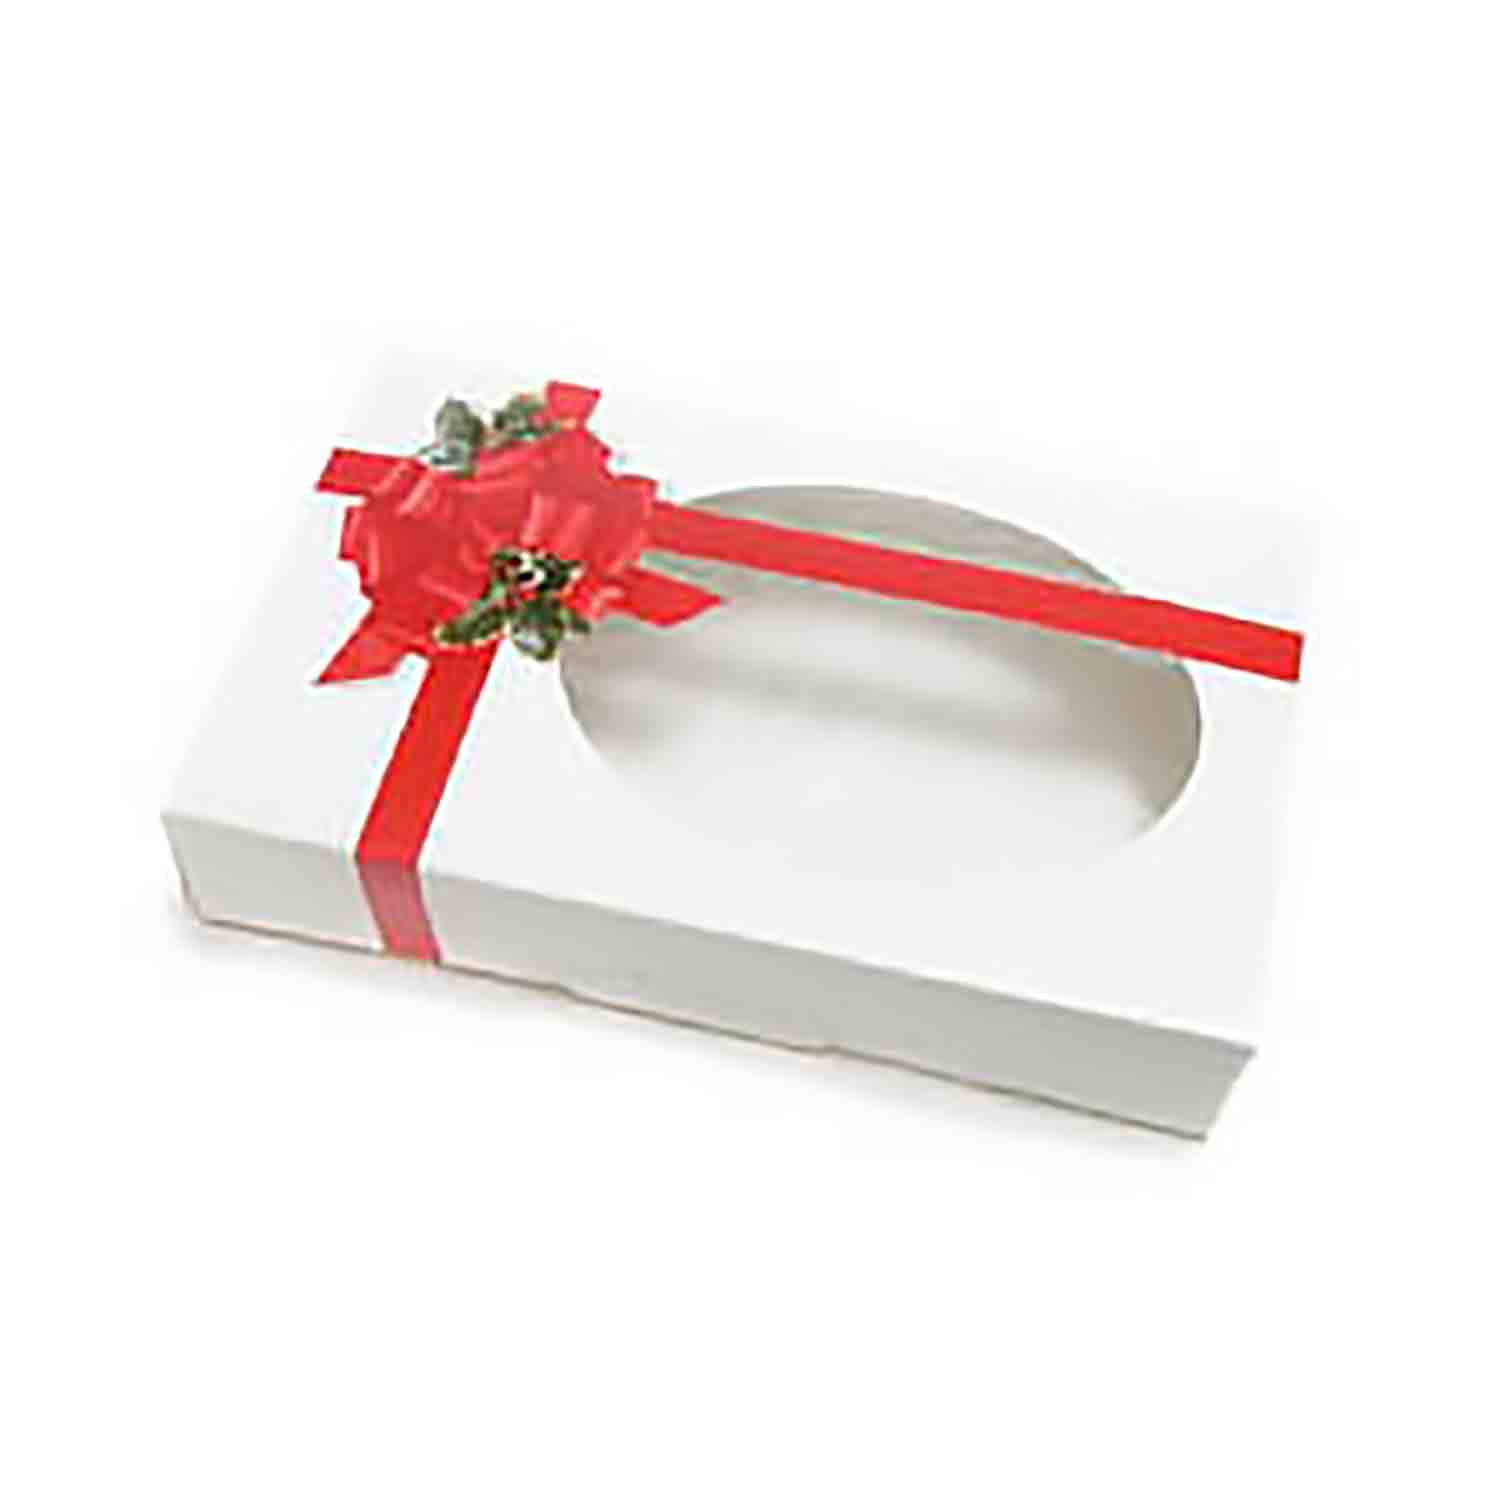 1/2 lb. Ribbon & Holly Cookie Box